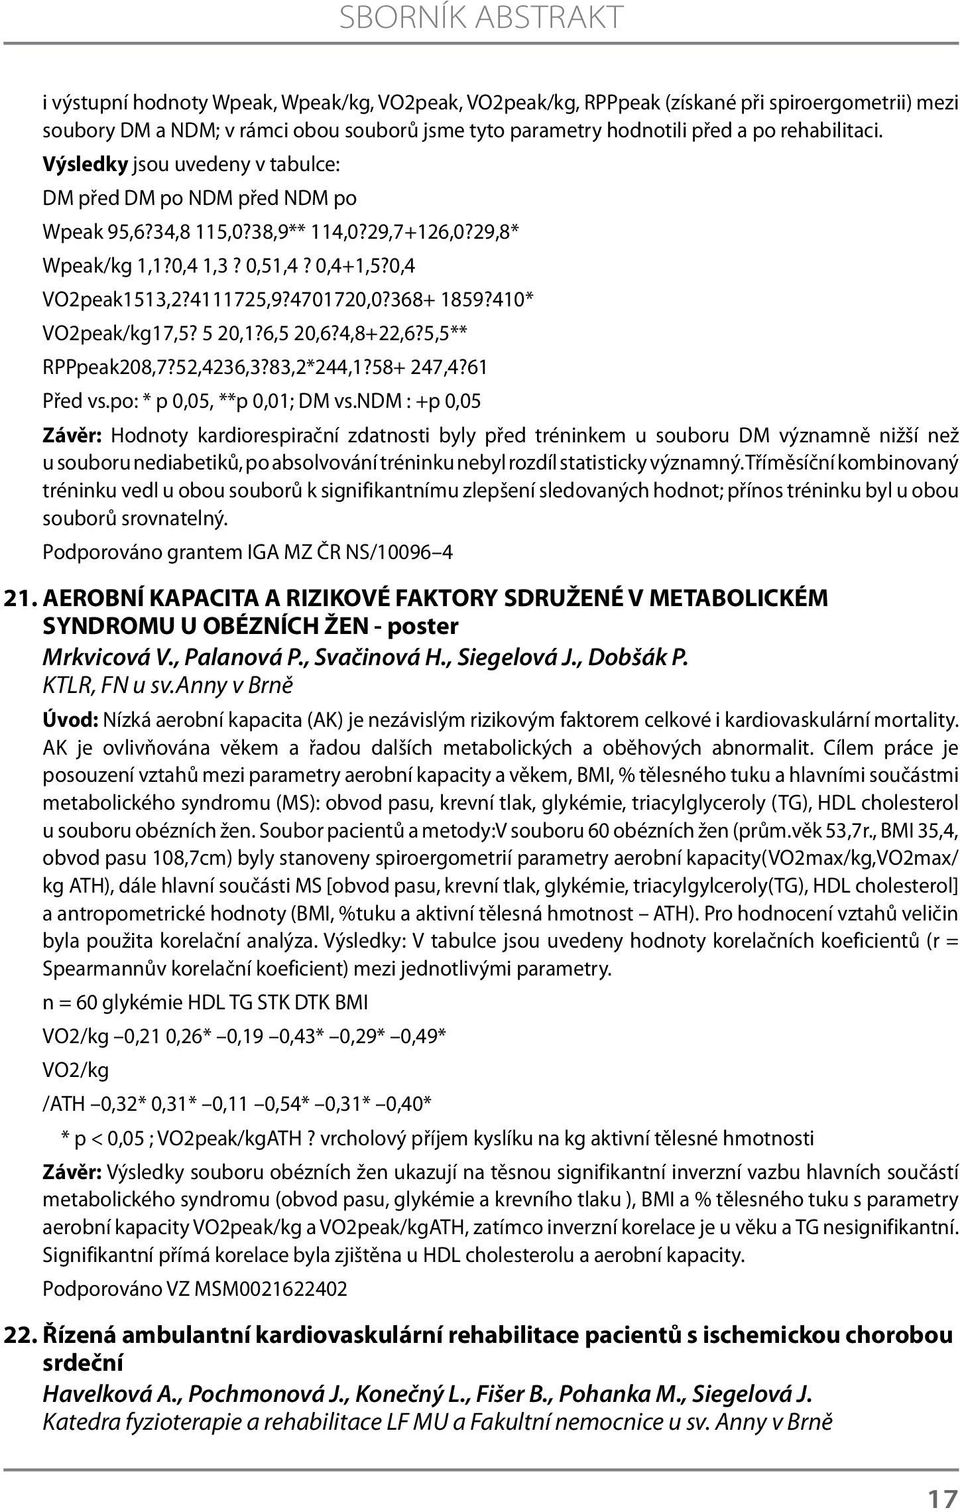 4701720,0?368+ 1859?410* VO2peak/kg17,5? 5 20,1?6,5 20,6?4,8+22,6?5,5** RPPpeak208,7?52,4236,3?83,2*244,1?58+ 247,4?61 Před vs.po: * p 0,05, **p 0,01; DM vs.